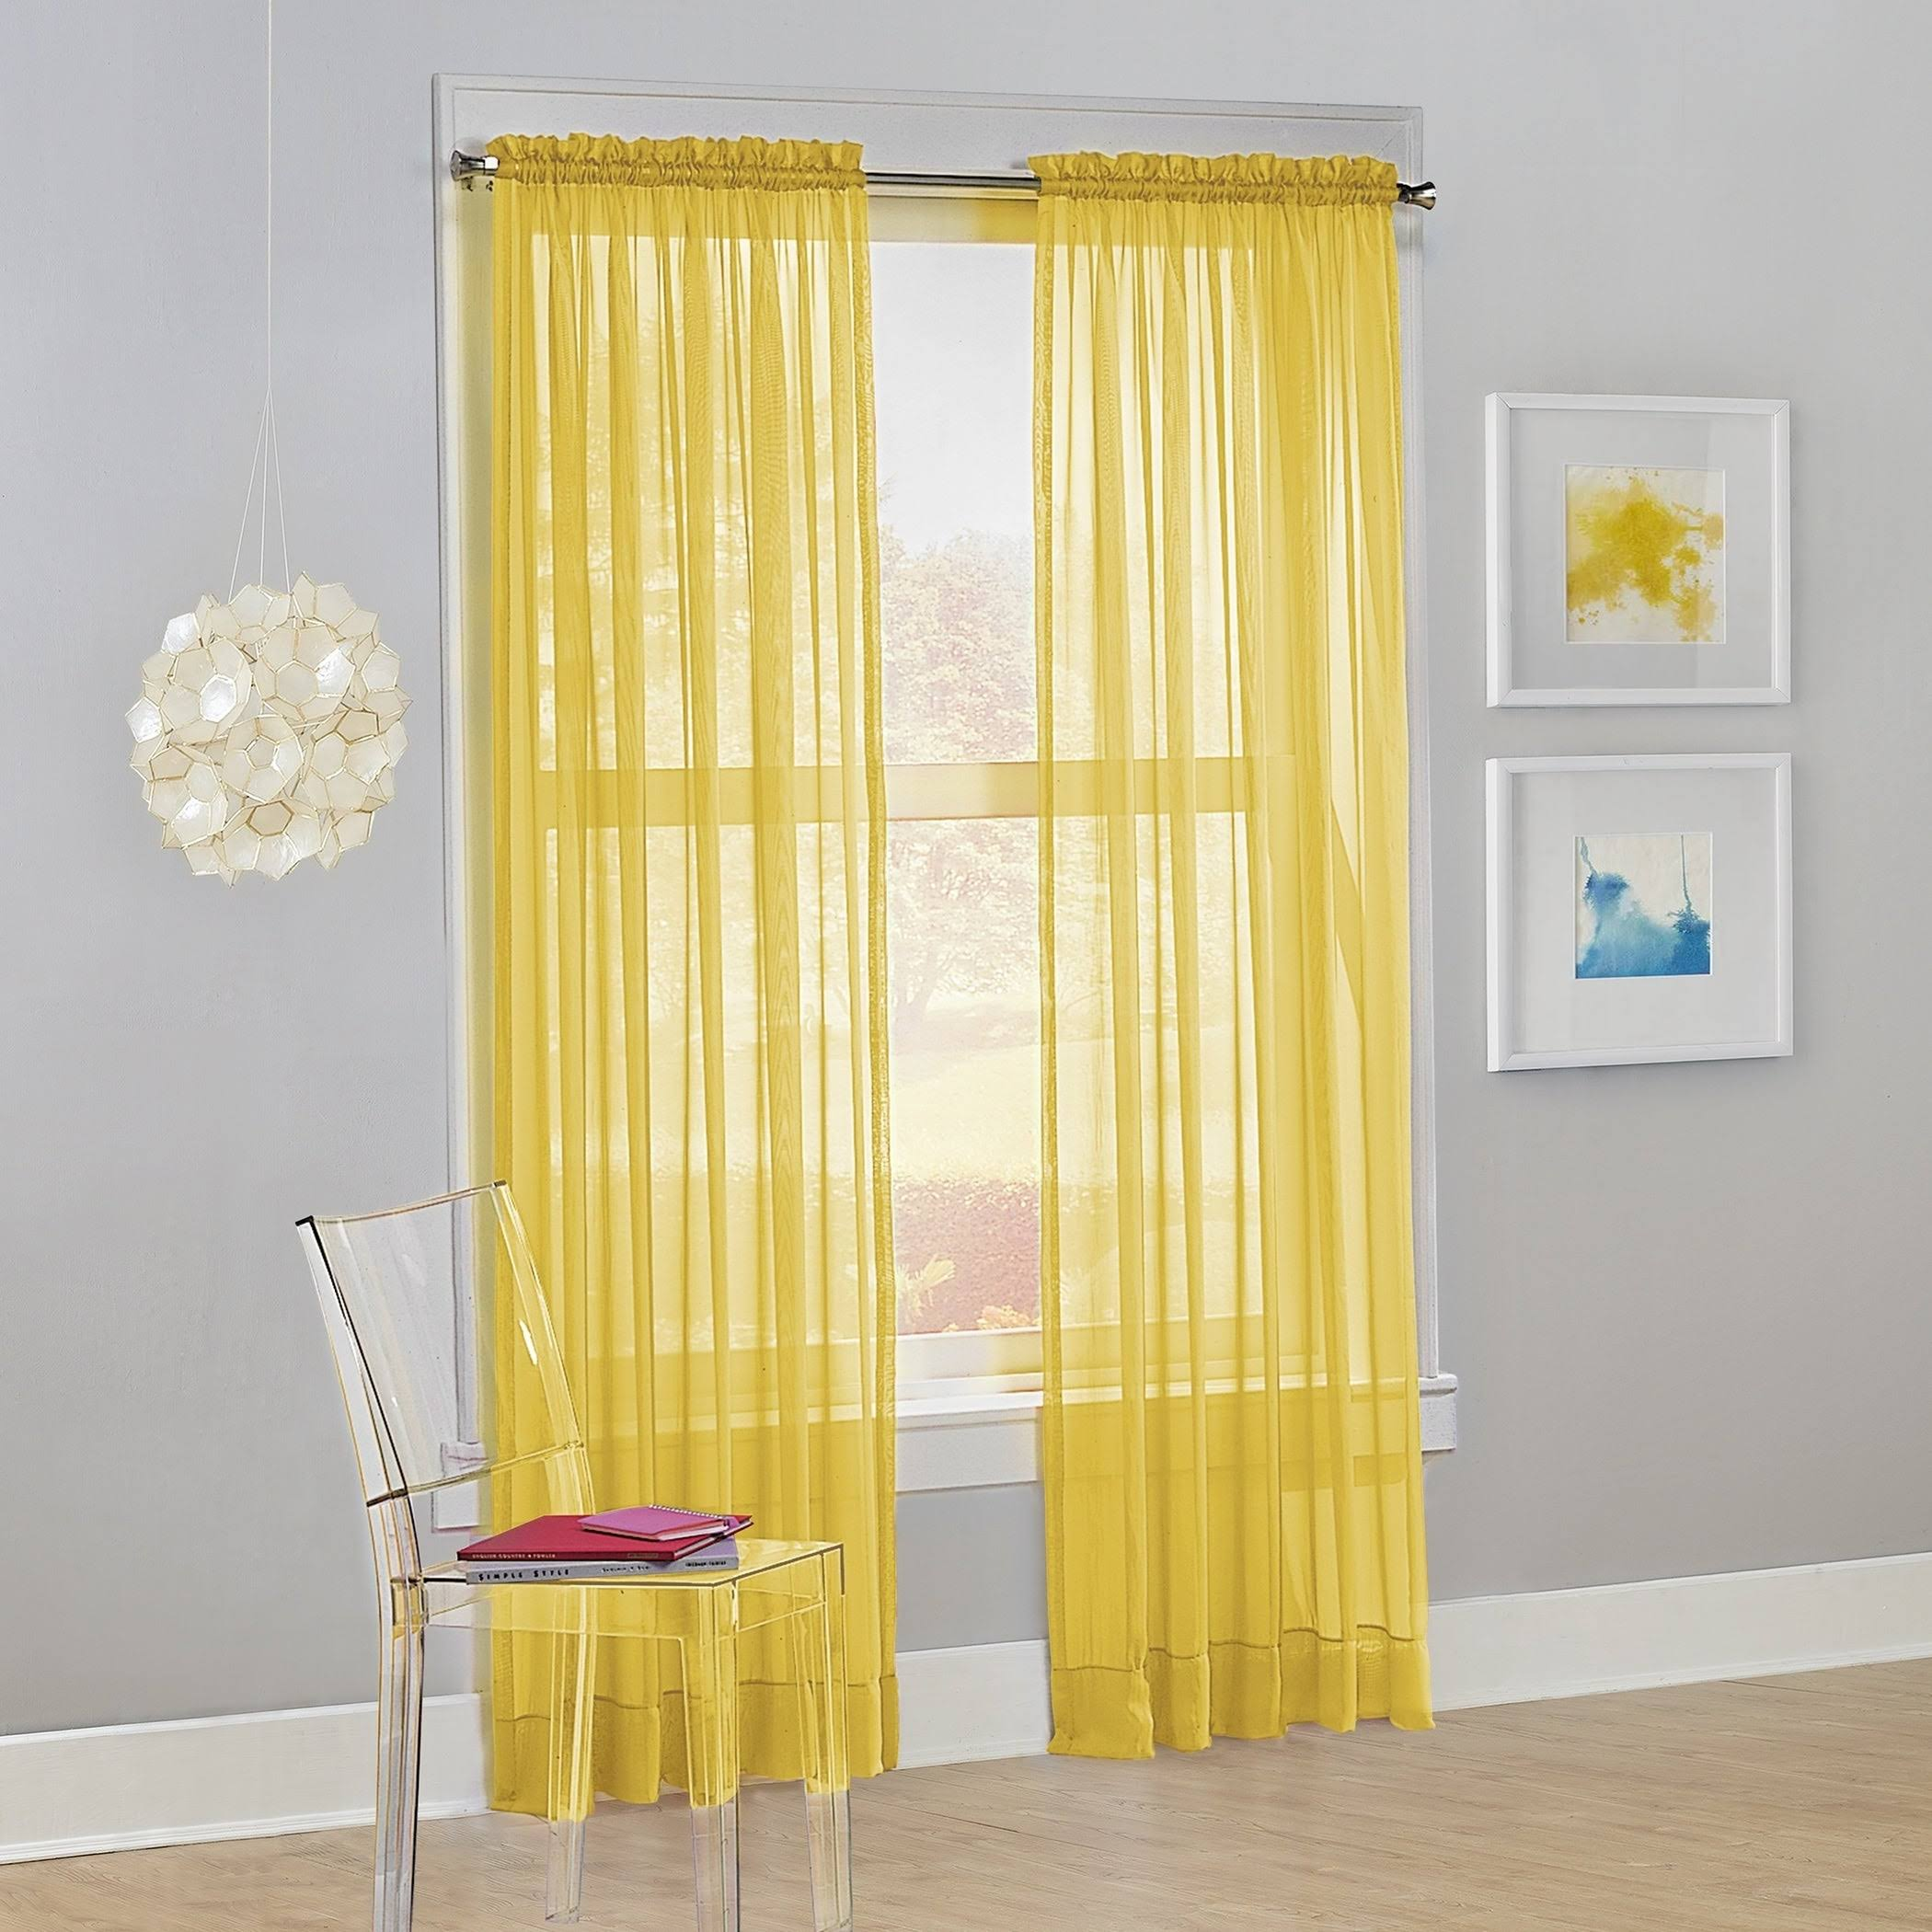 NO. 918 Calypso Sheer Voile Rod Pocket Curtain Panel, Lemon Yellow